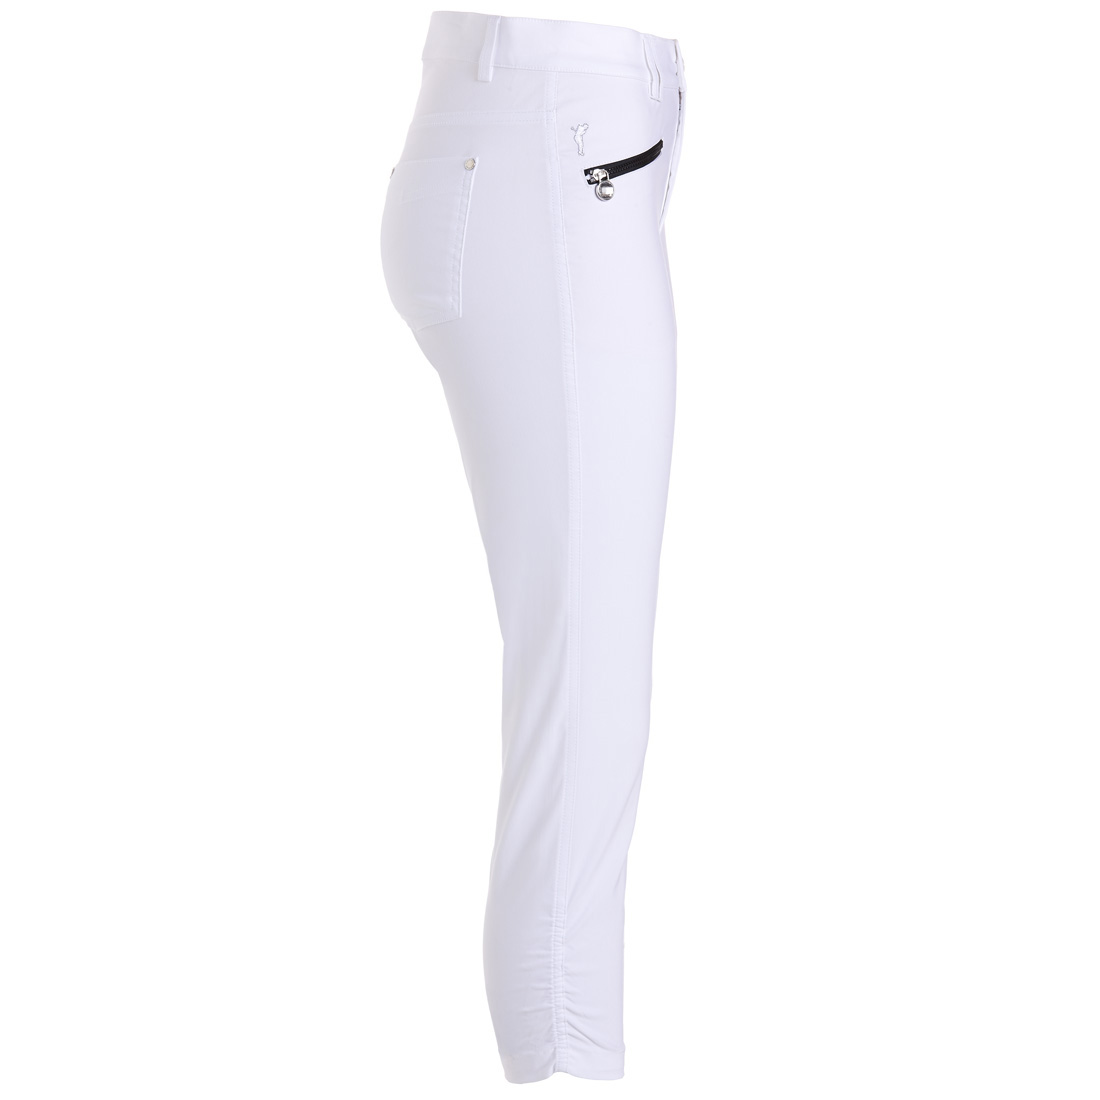 Damen Golf-Caprihose Techno Stretch in Slim Fit